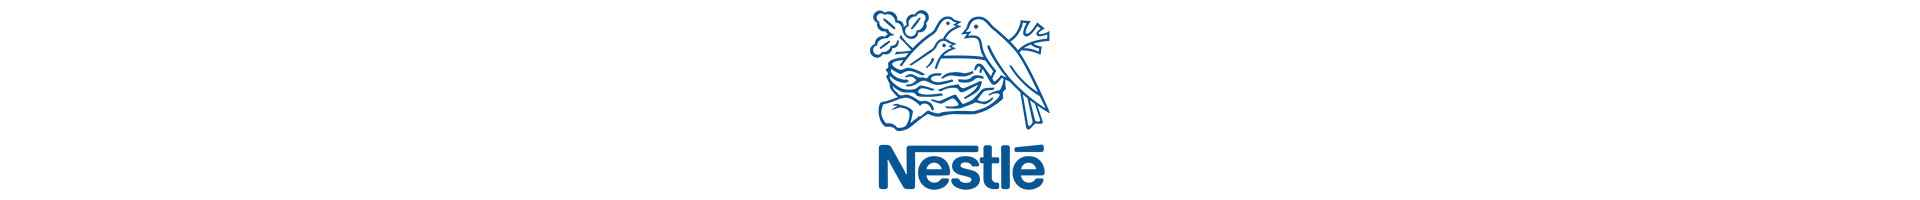 Bright animated video for the Nestle brand